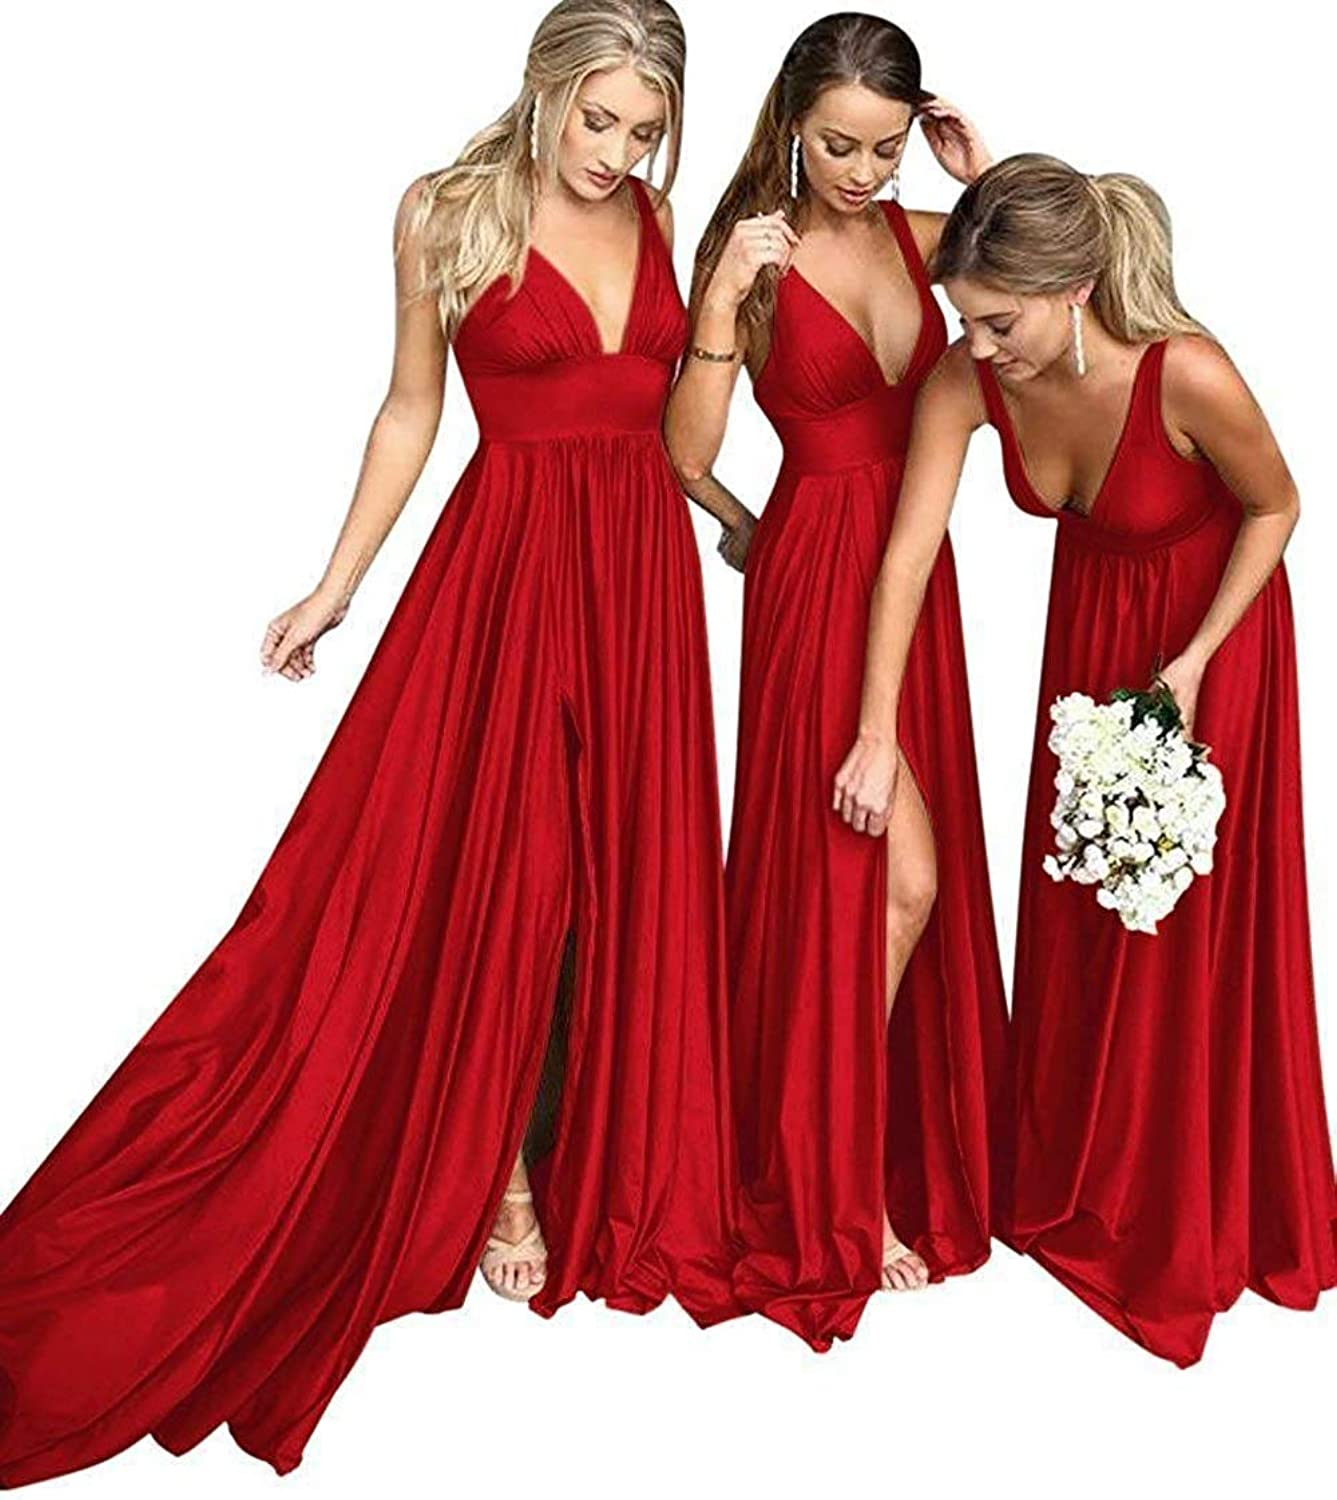 FTBY Long VNeck Bridesmaid Dresses Women Silt Evening Dresses Strap Sleeveless Formal Party Gowns Backless